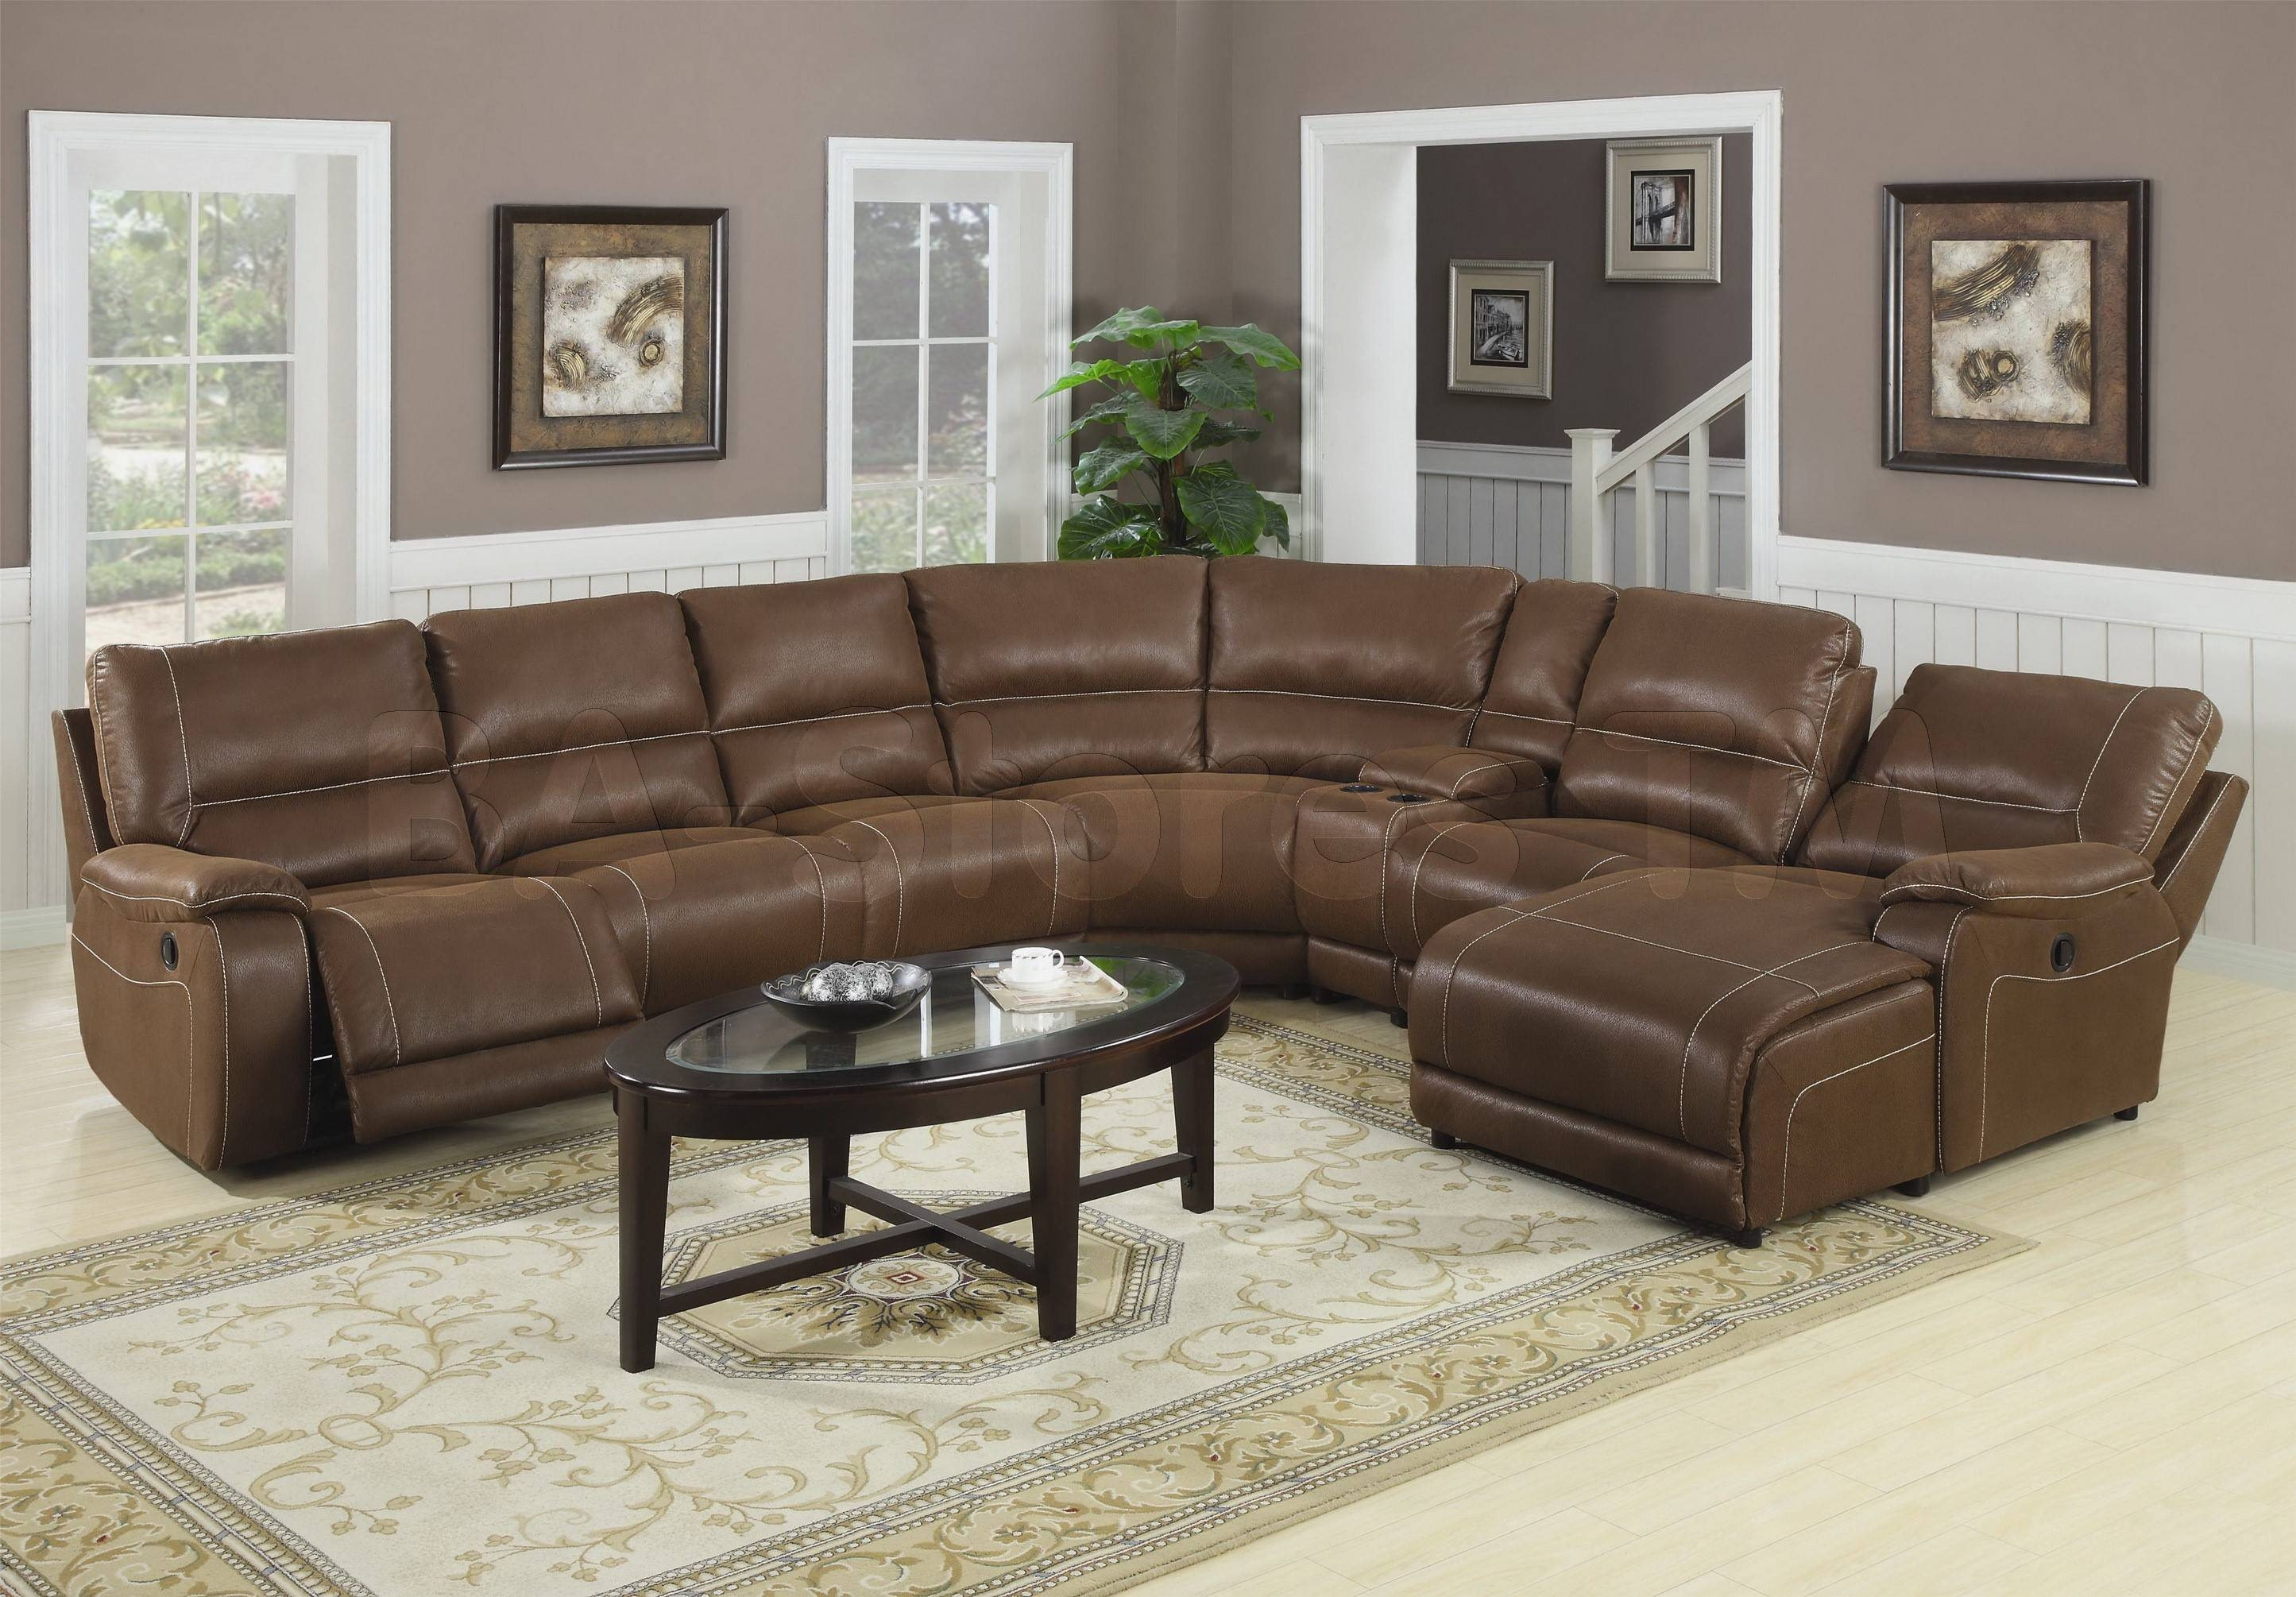 Sofas Center : Leather Sectional Sofas With Power Reclinersleather throughout Closeout Sectional Sofas (Image 20 of 30)